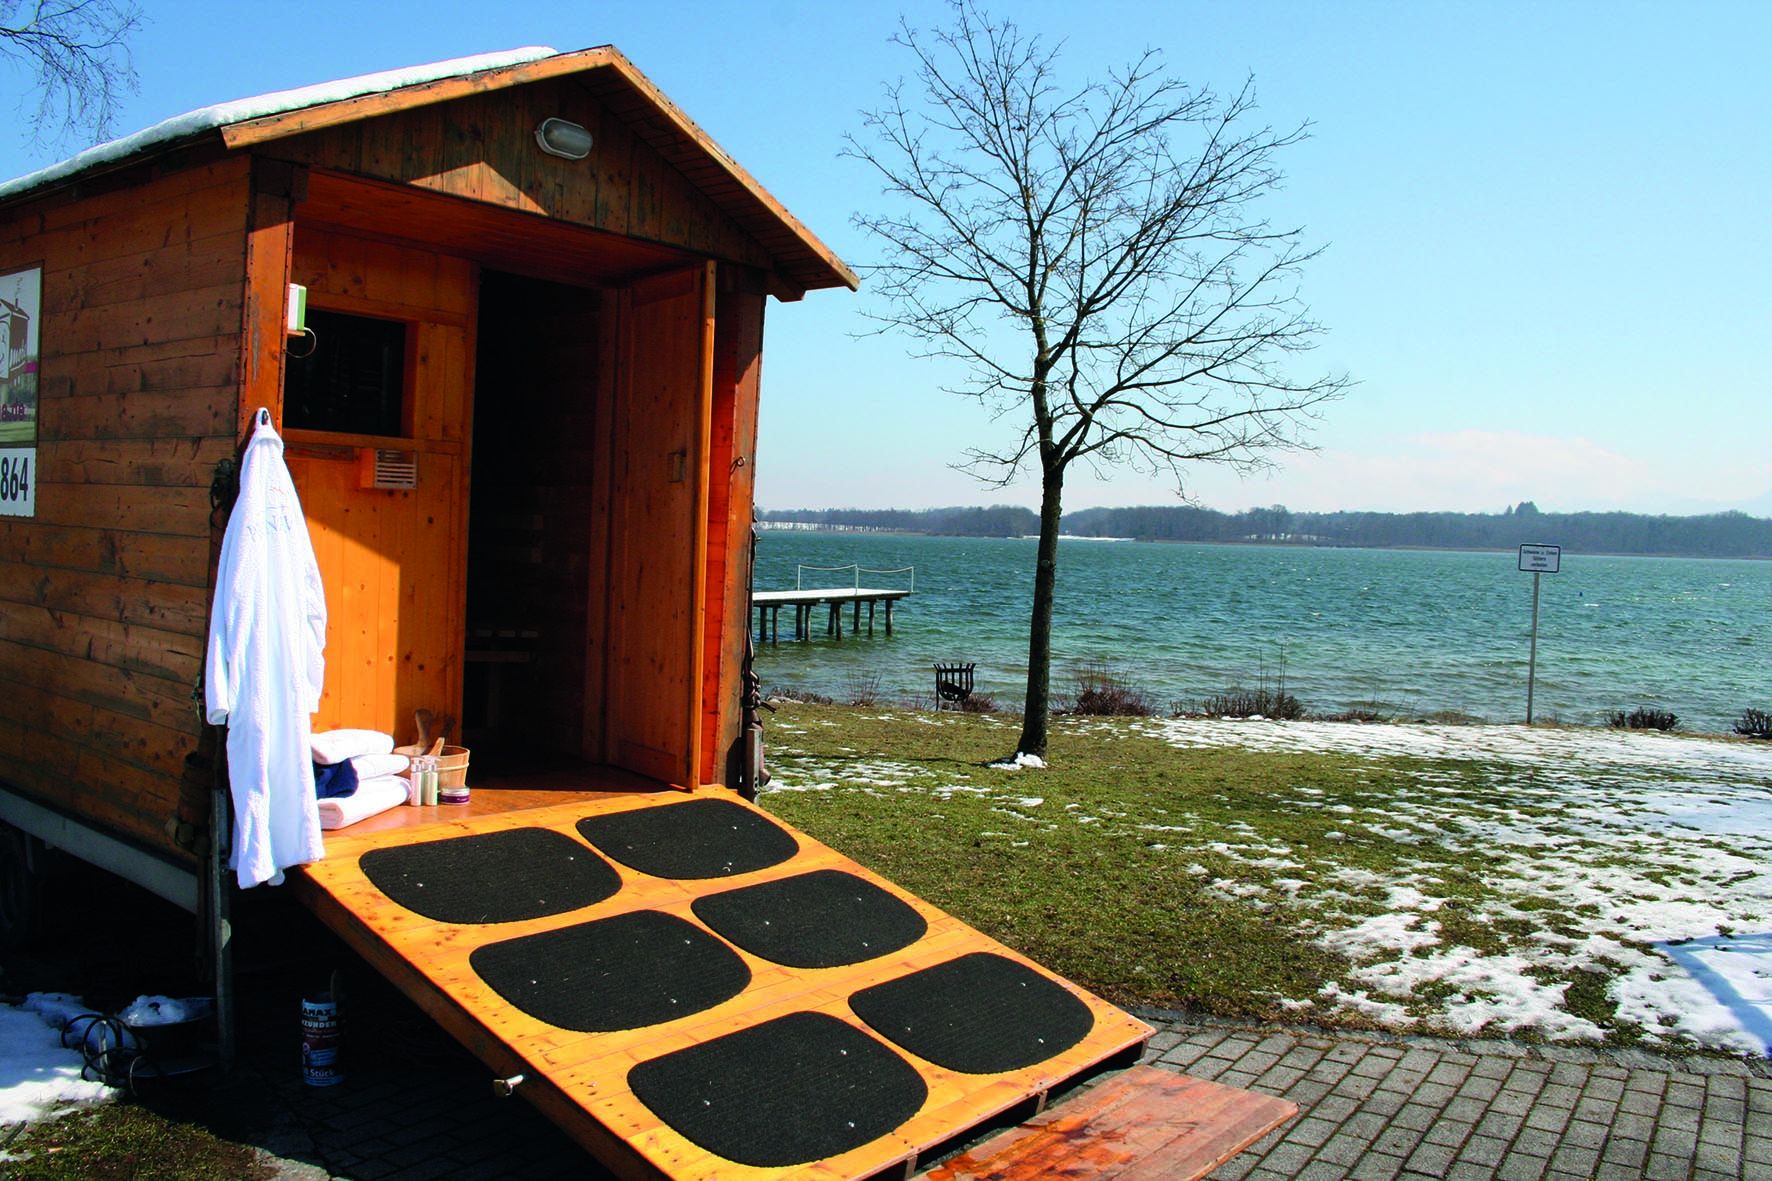 prienavera erlebnisbad sauna am see samerberger nachrichten. Black Bedroom Furniture Sets. Home Design Ideas